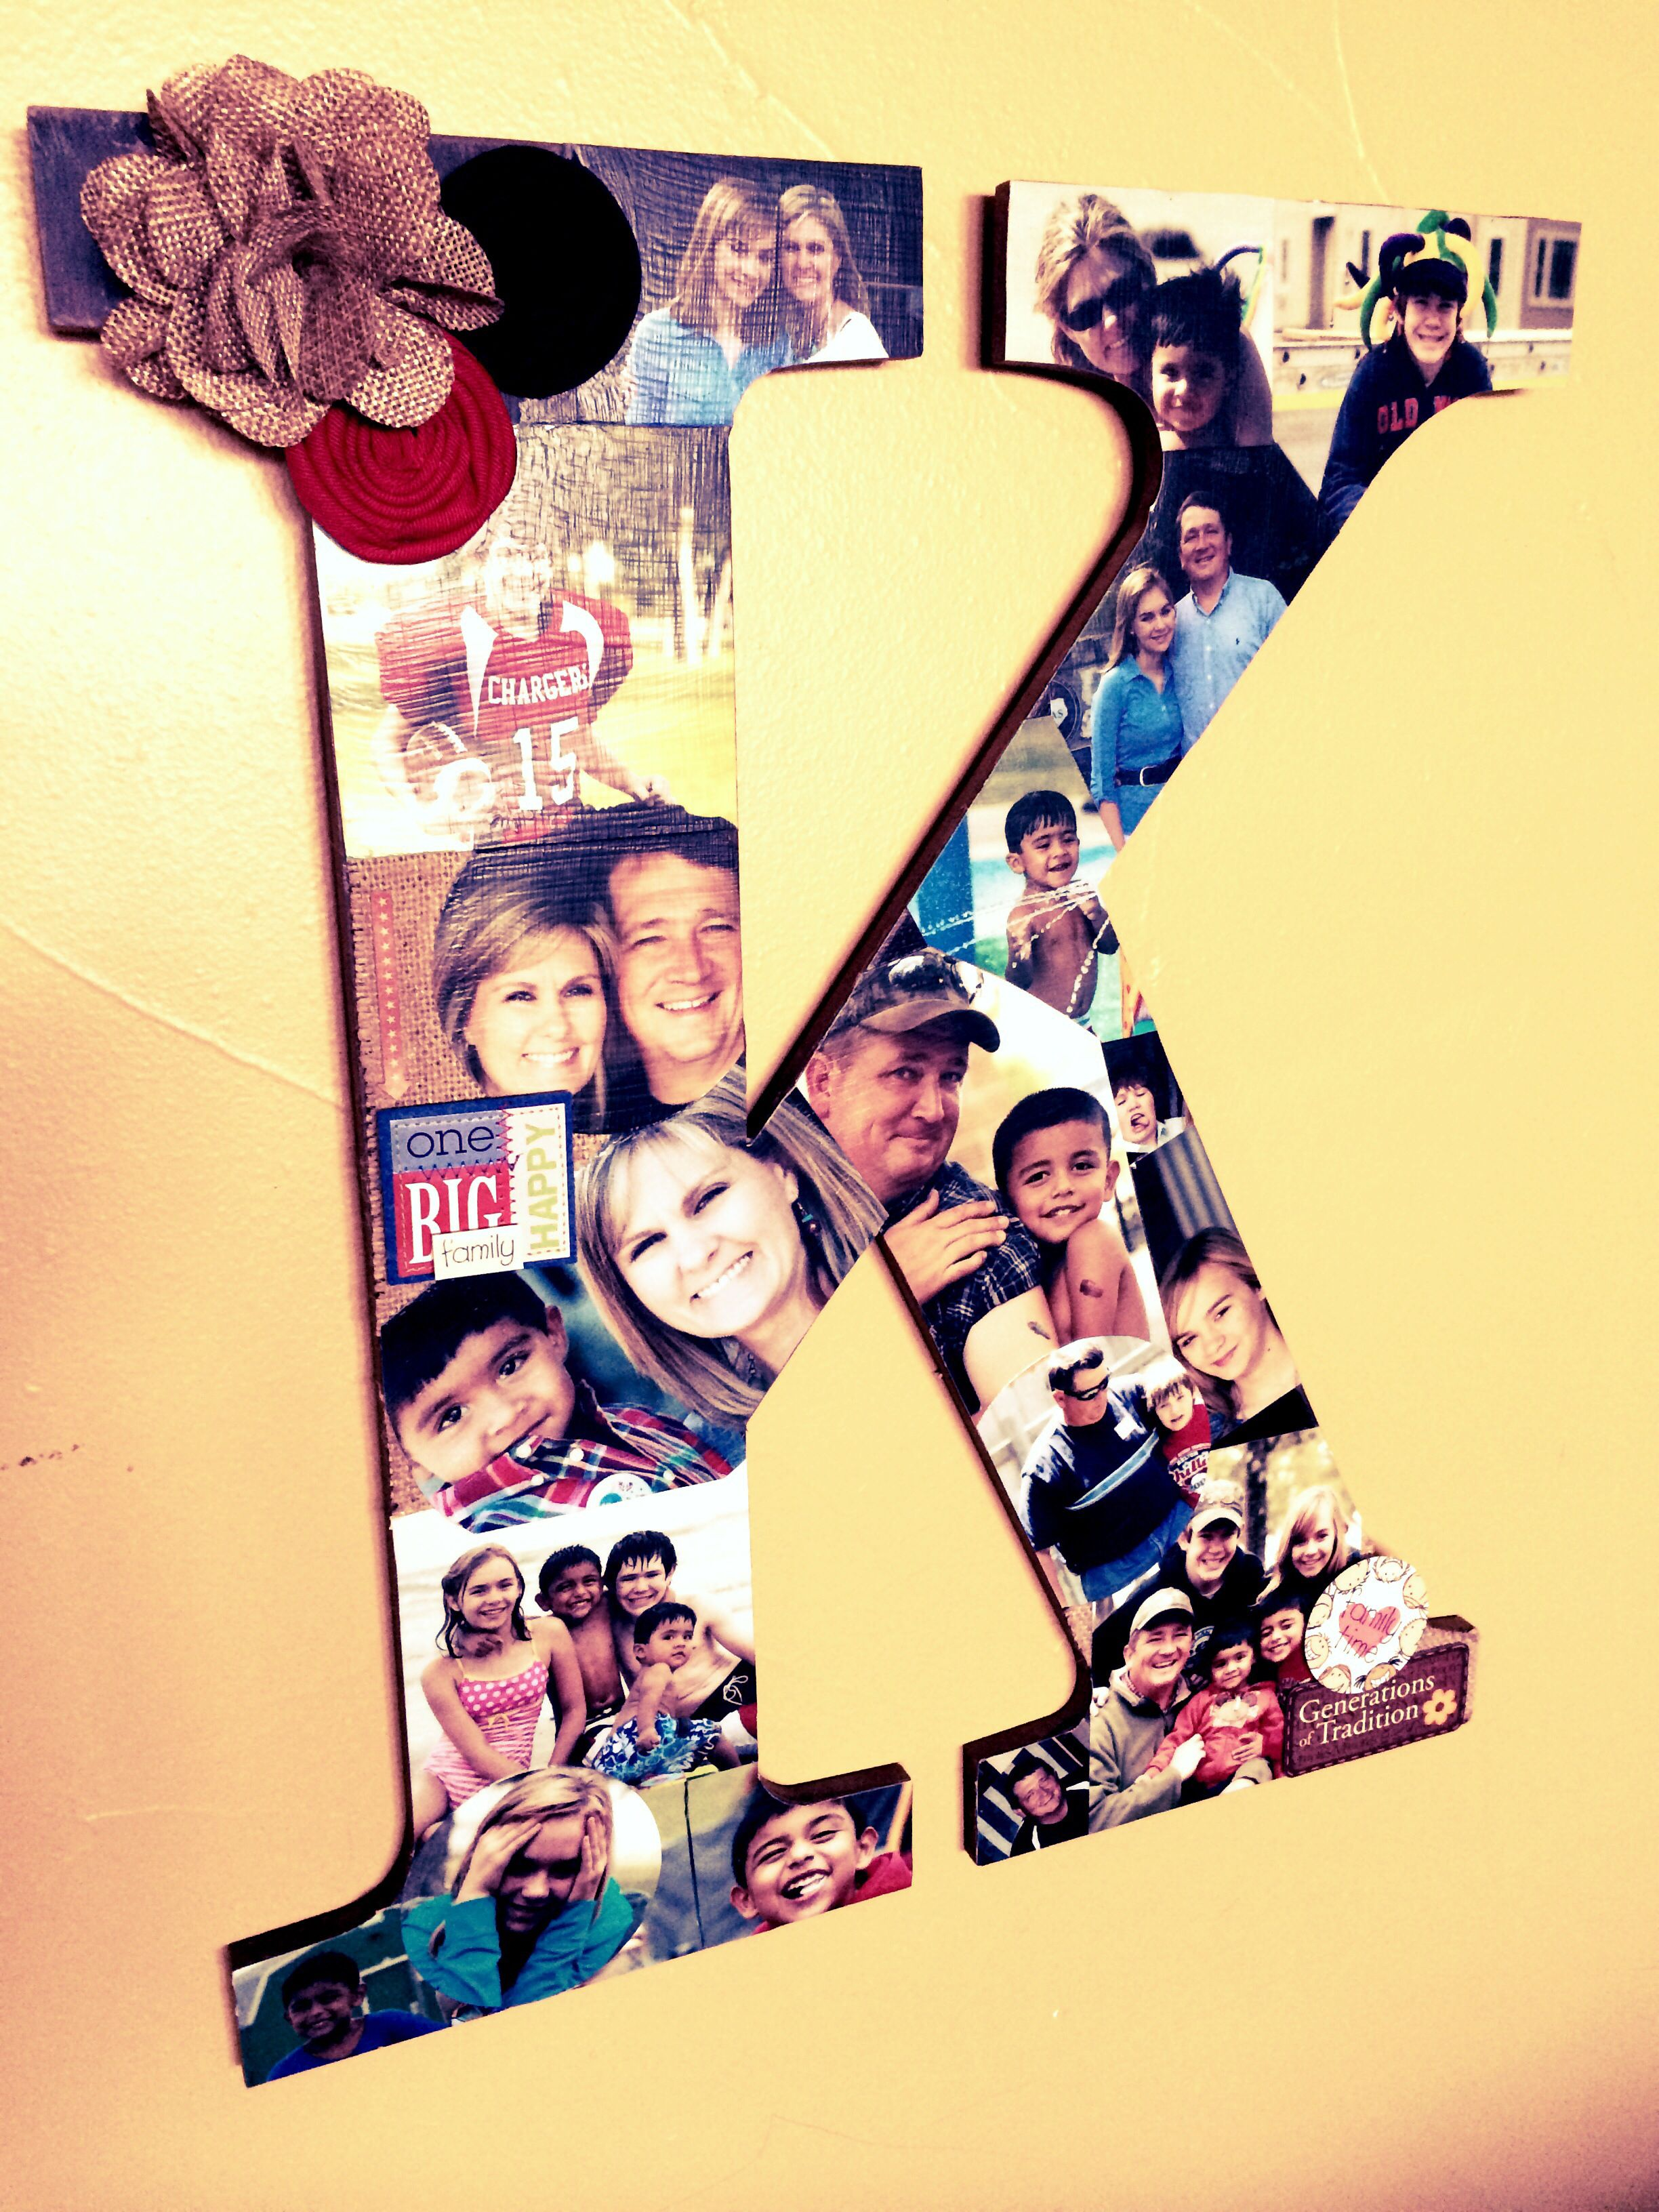 Wooden letter picture collage. Walgreens app the best for fast ...